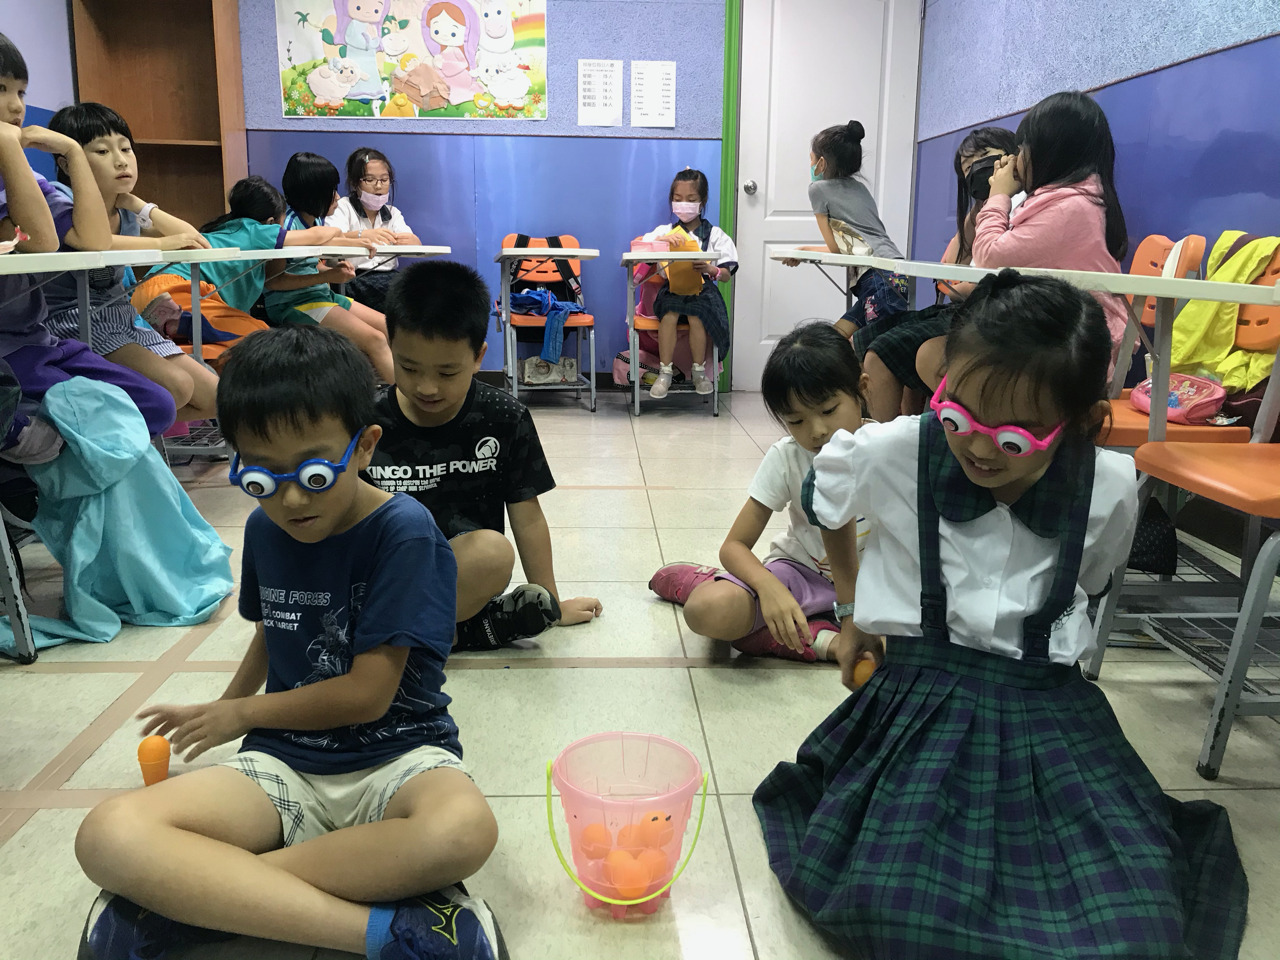 Teaching English and Living in Taiwan Jobs Available 教學工作, Emmanuel English Learning Center Island Lifestyle with decent pay (When not uder Covid restrictions) for Excellent Teacher image